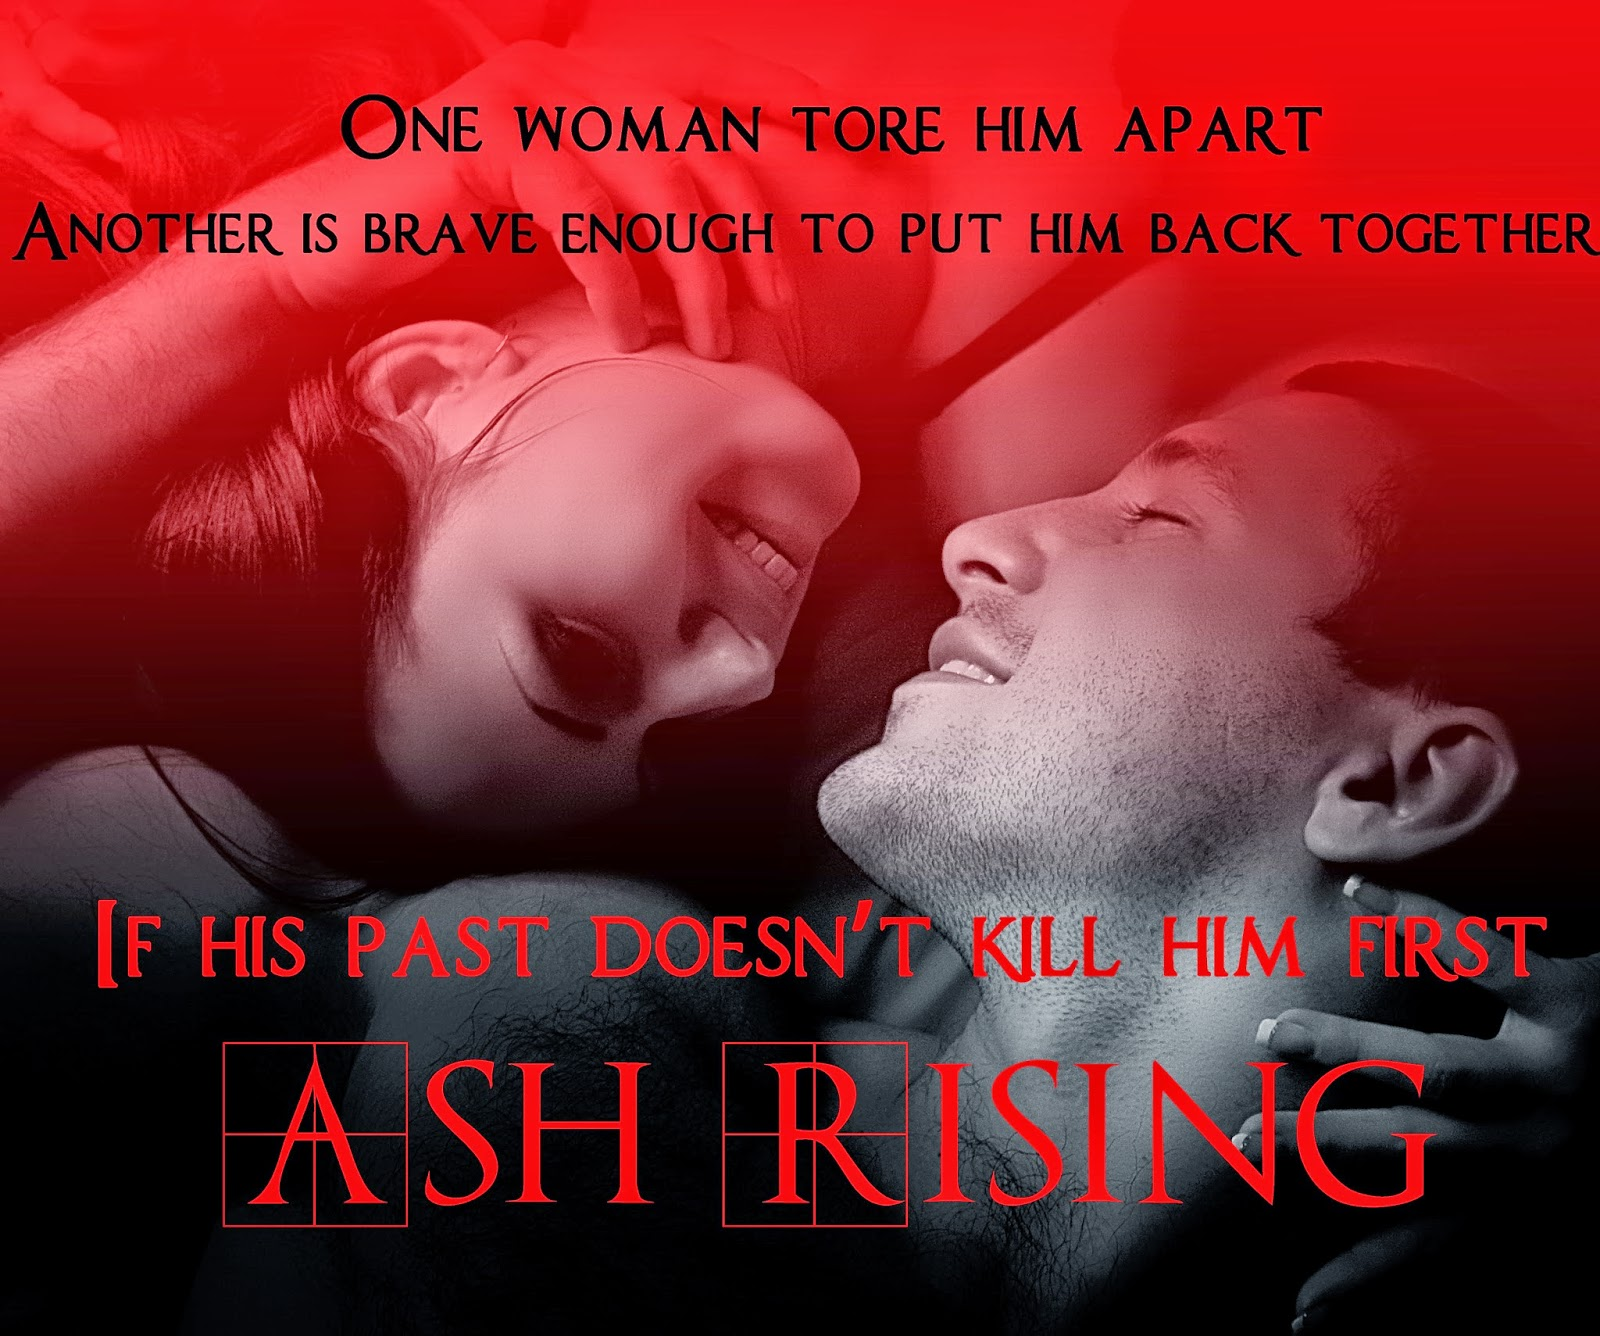 Ash rising on Amazon